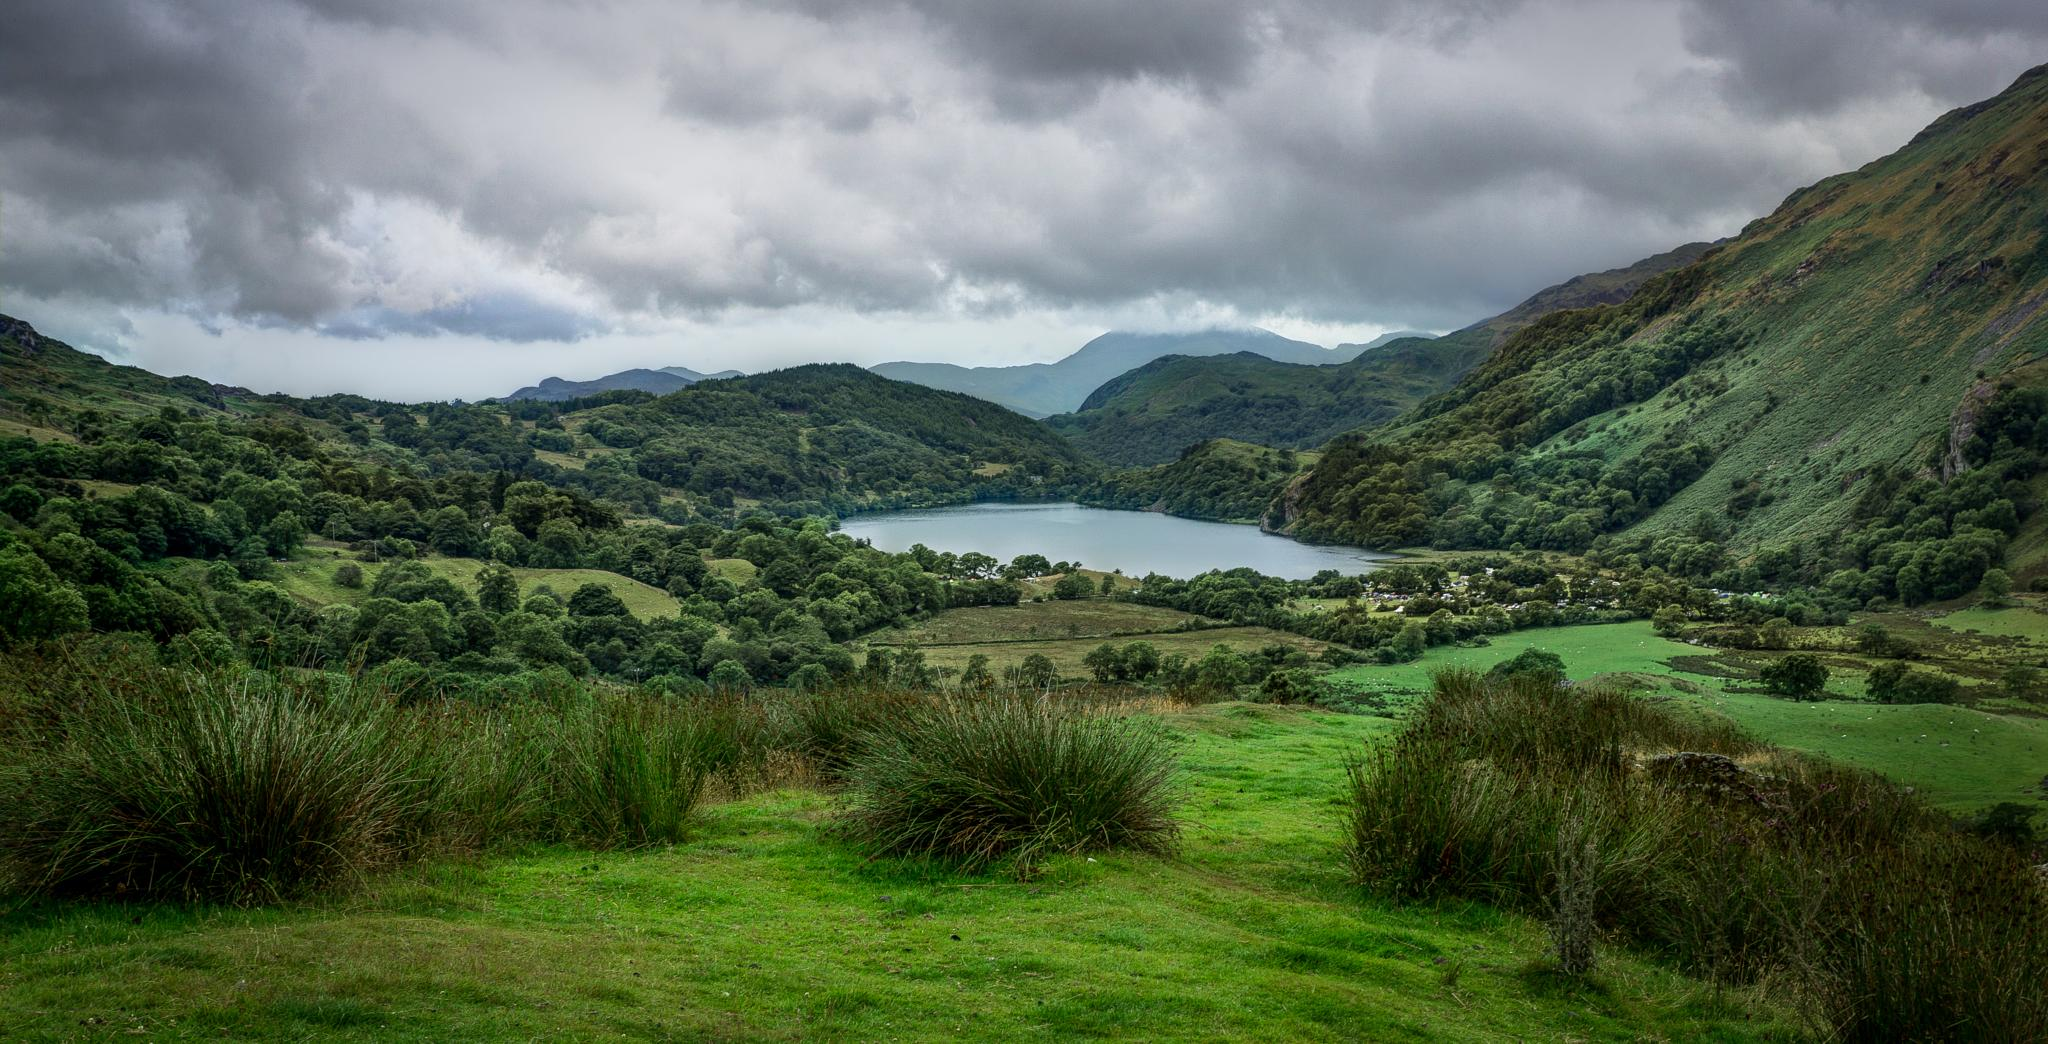 Lake Llyn Gwynant on the Beddgelert Rd, Snowdonia, North Wales, UK by Jackie Evans